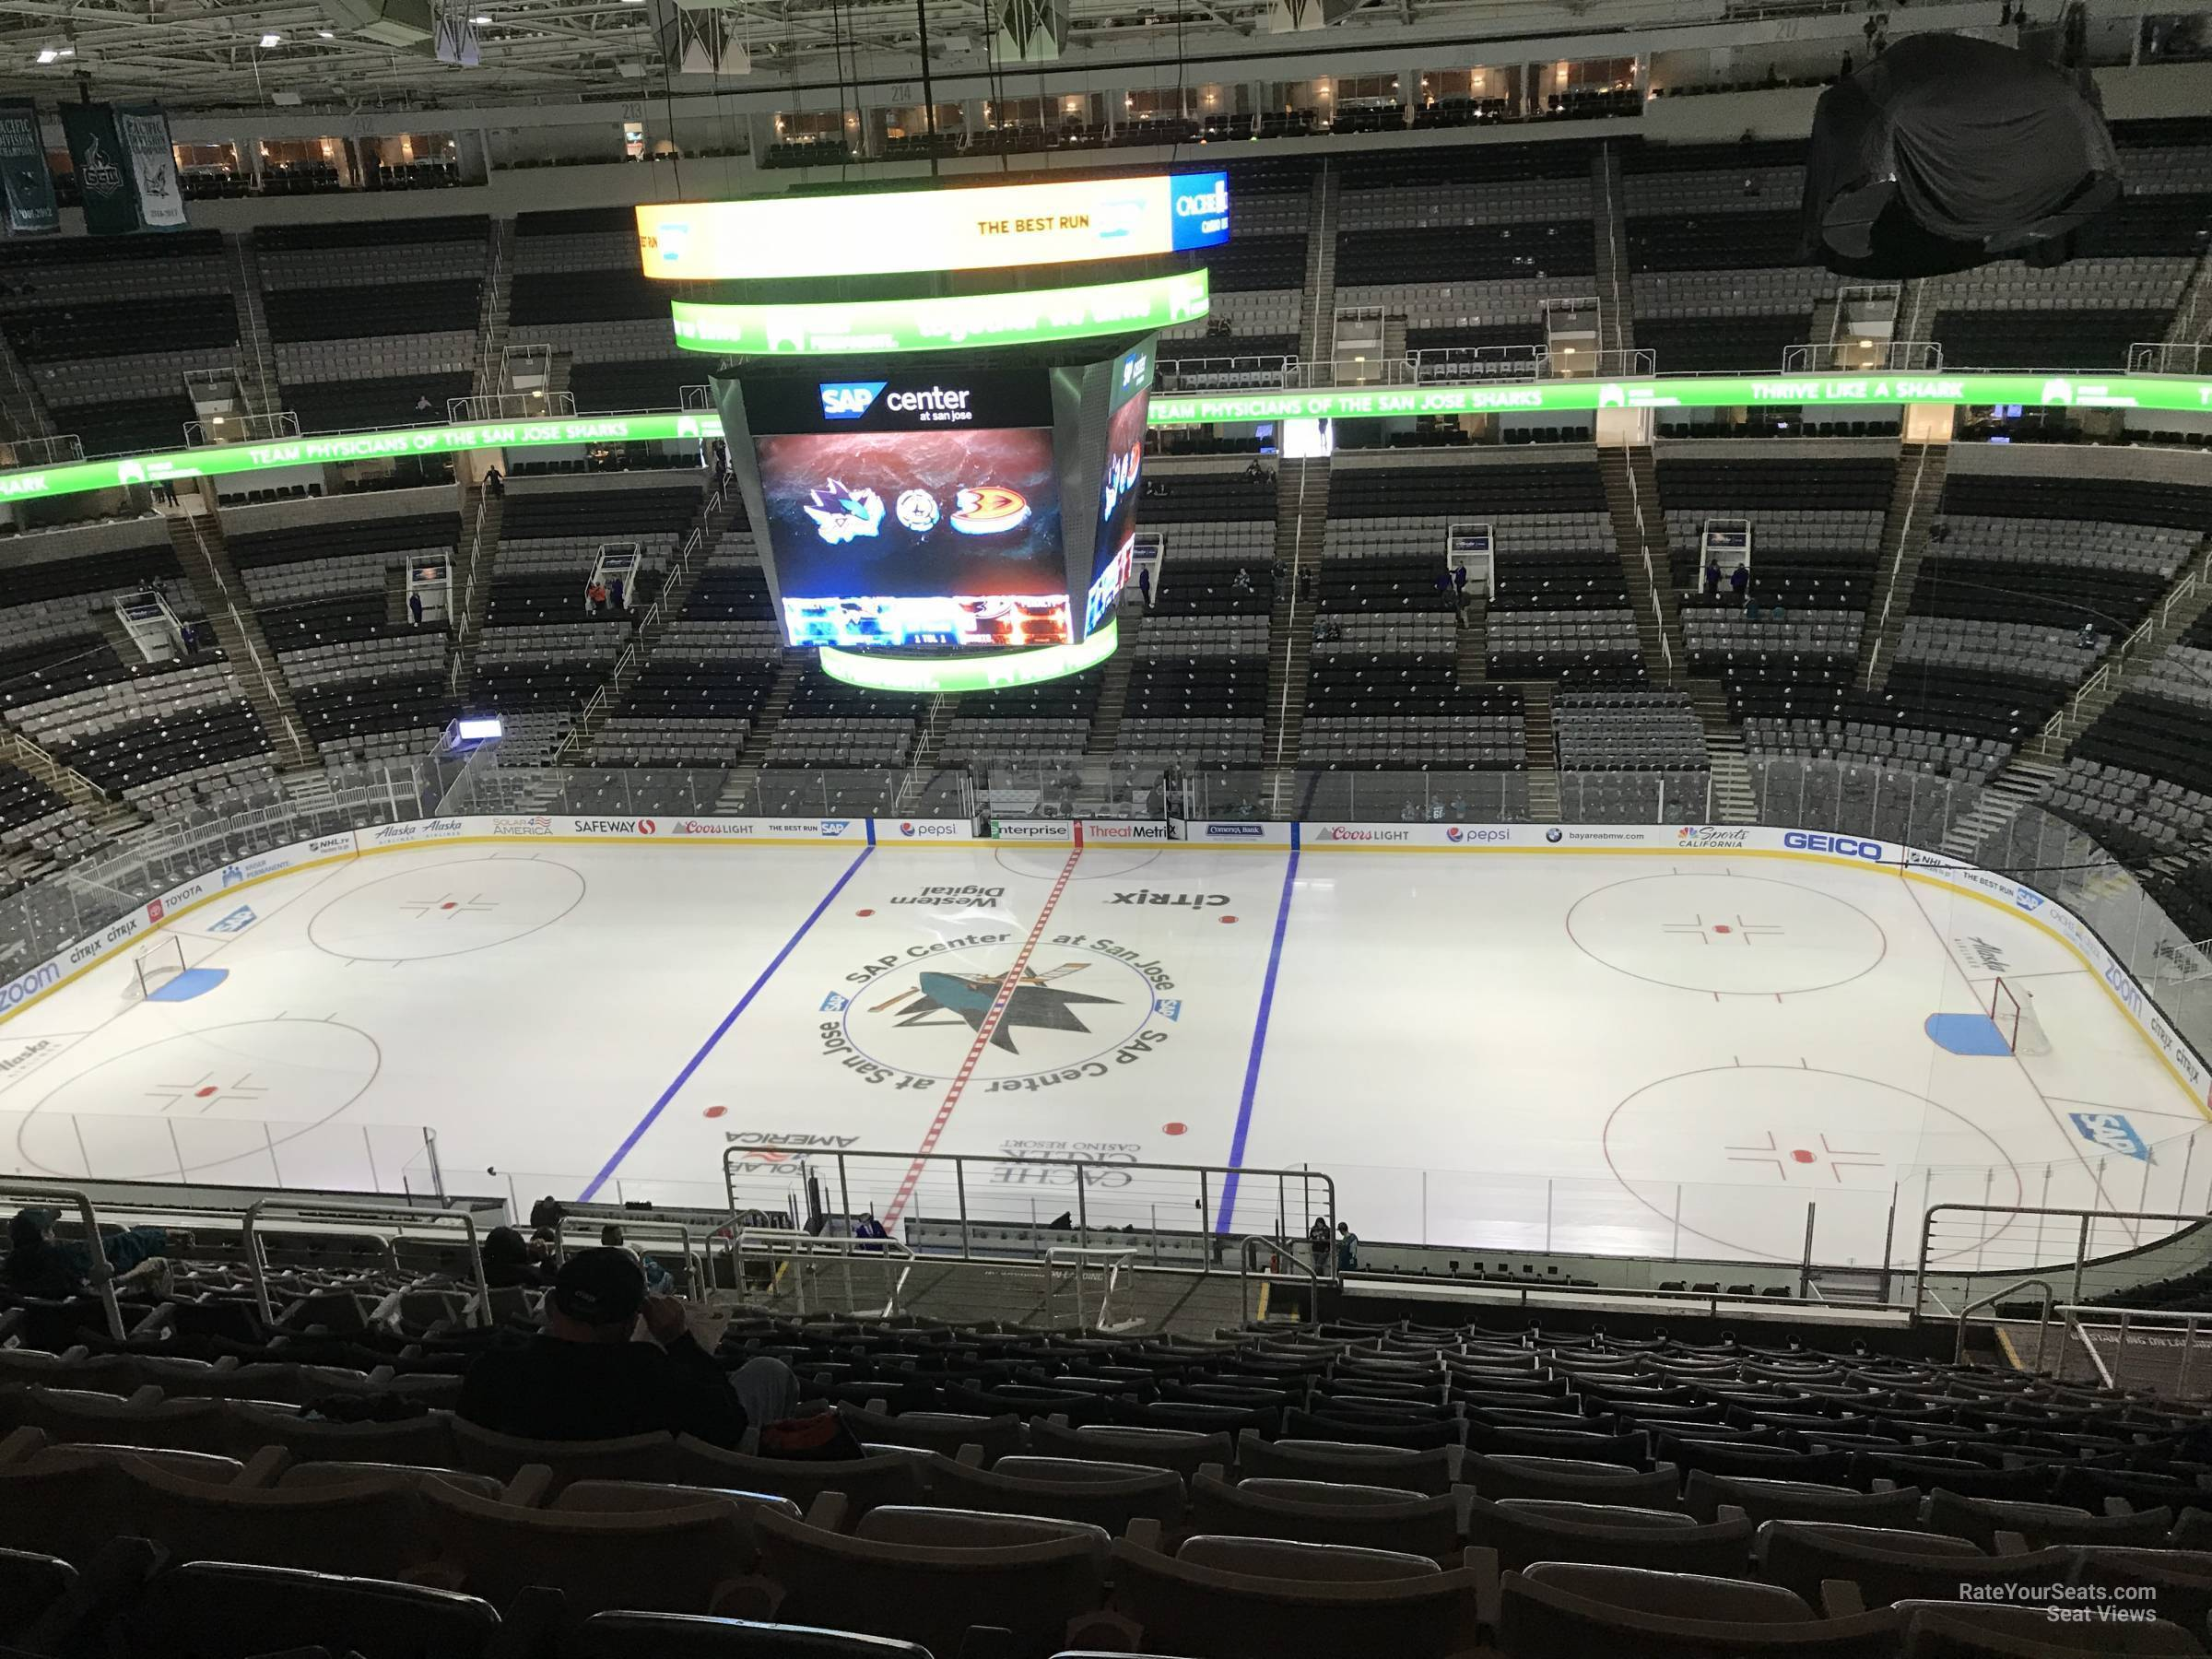 Section 228 seat view